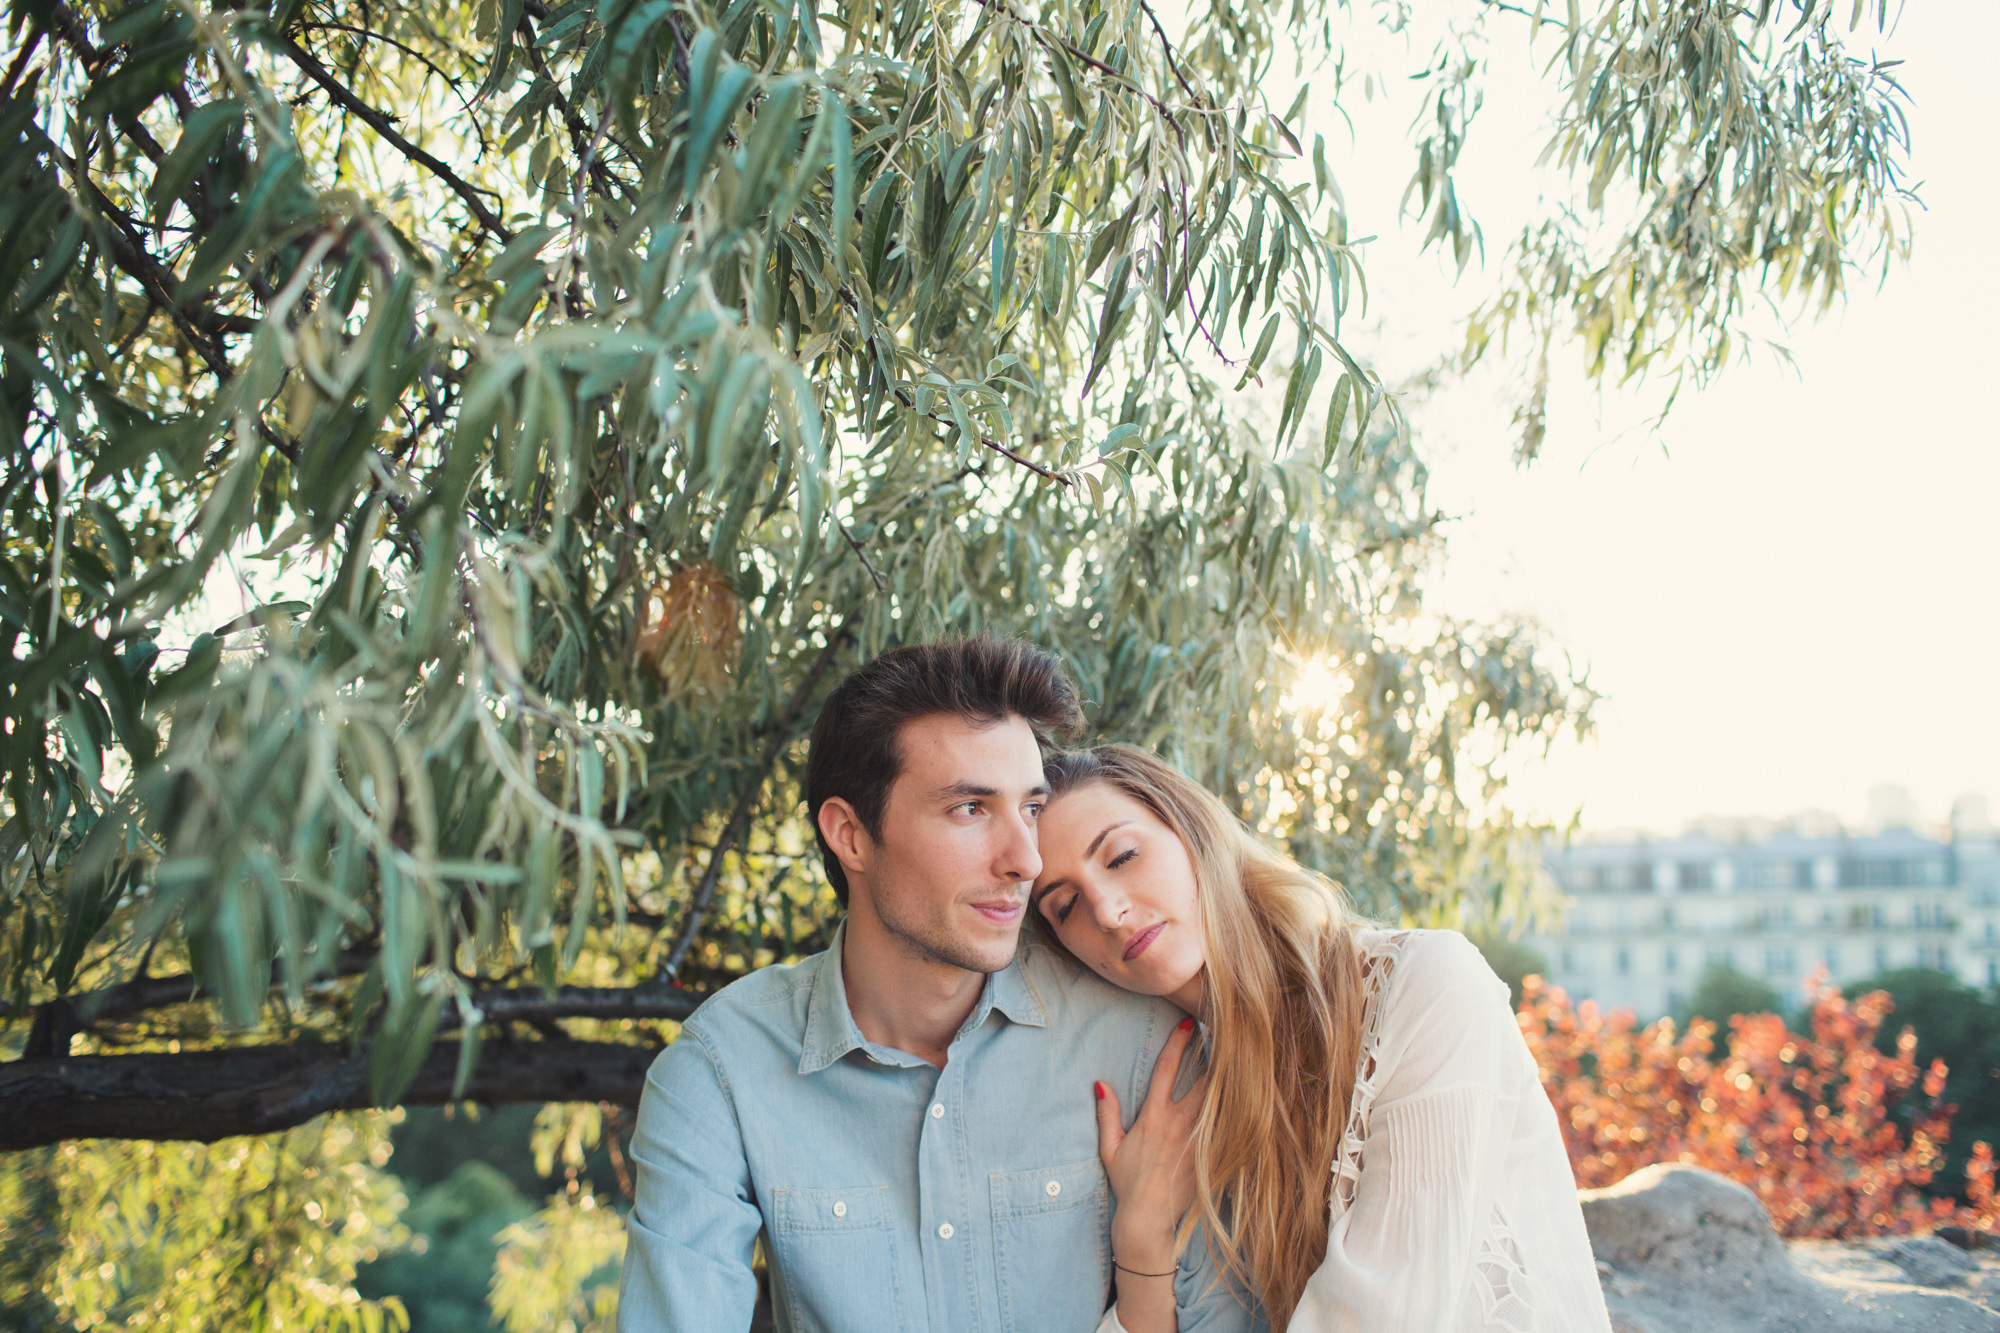 engagement-session-in-parisanne-claire-brun-0007